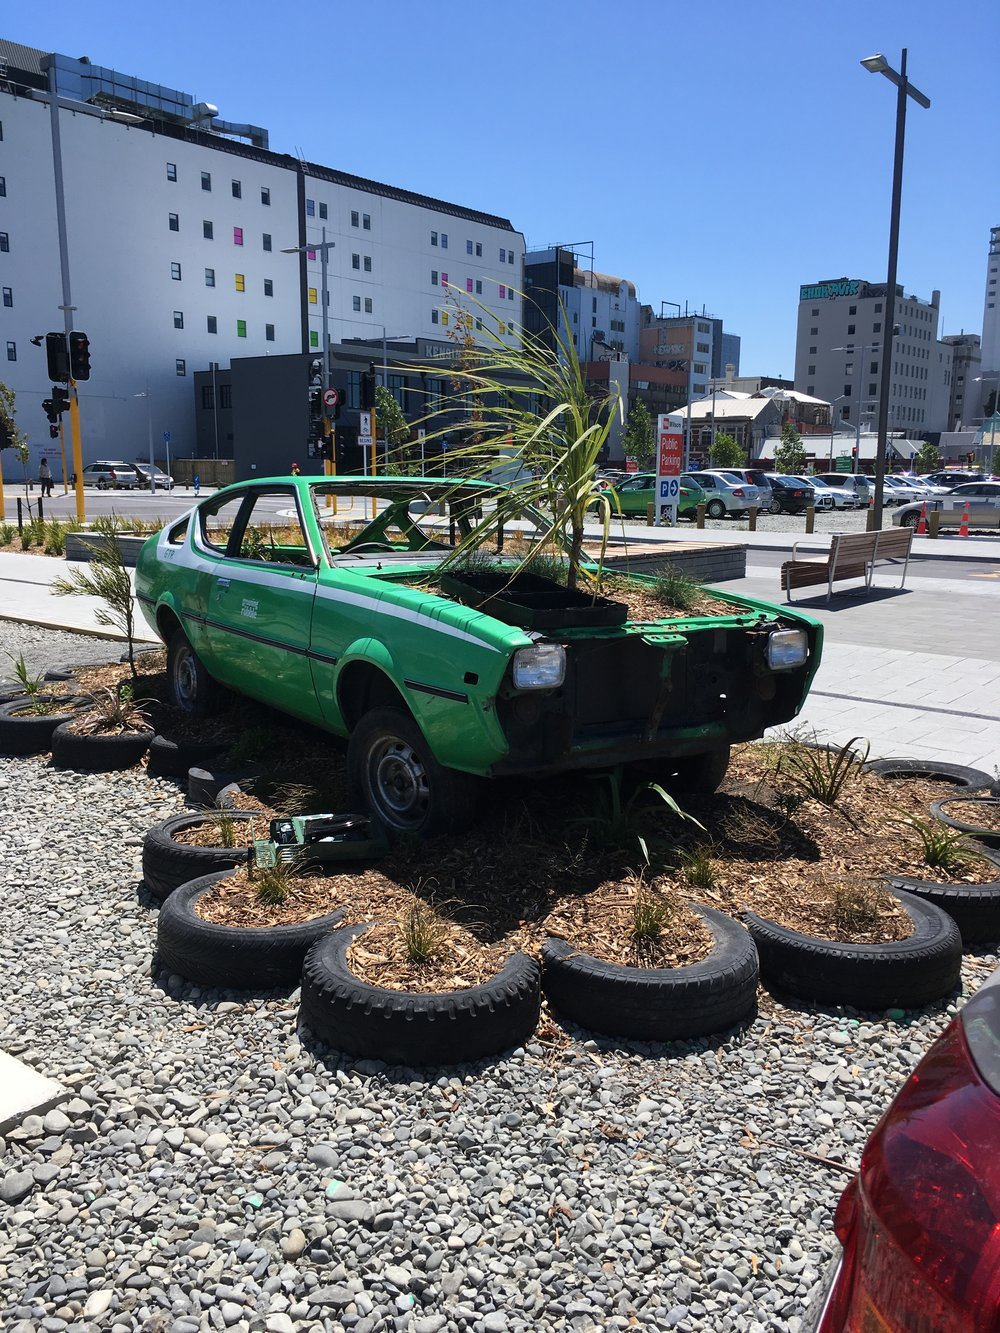 Greening the Rubble car park installation in Gap Filler's community car park, Good Spot.